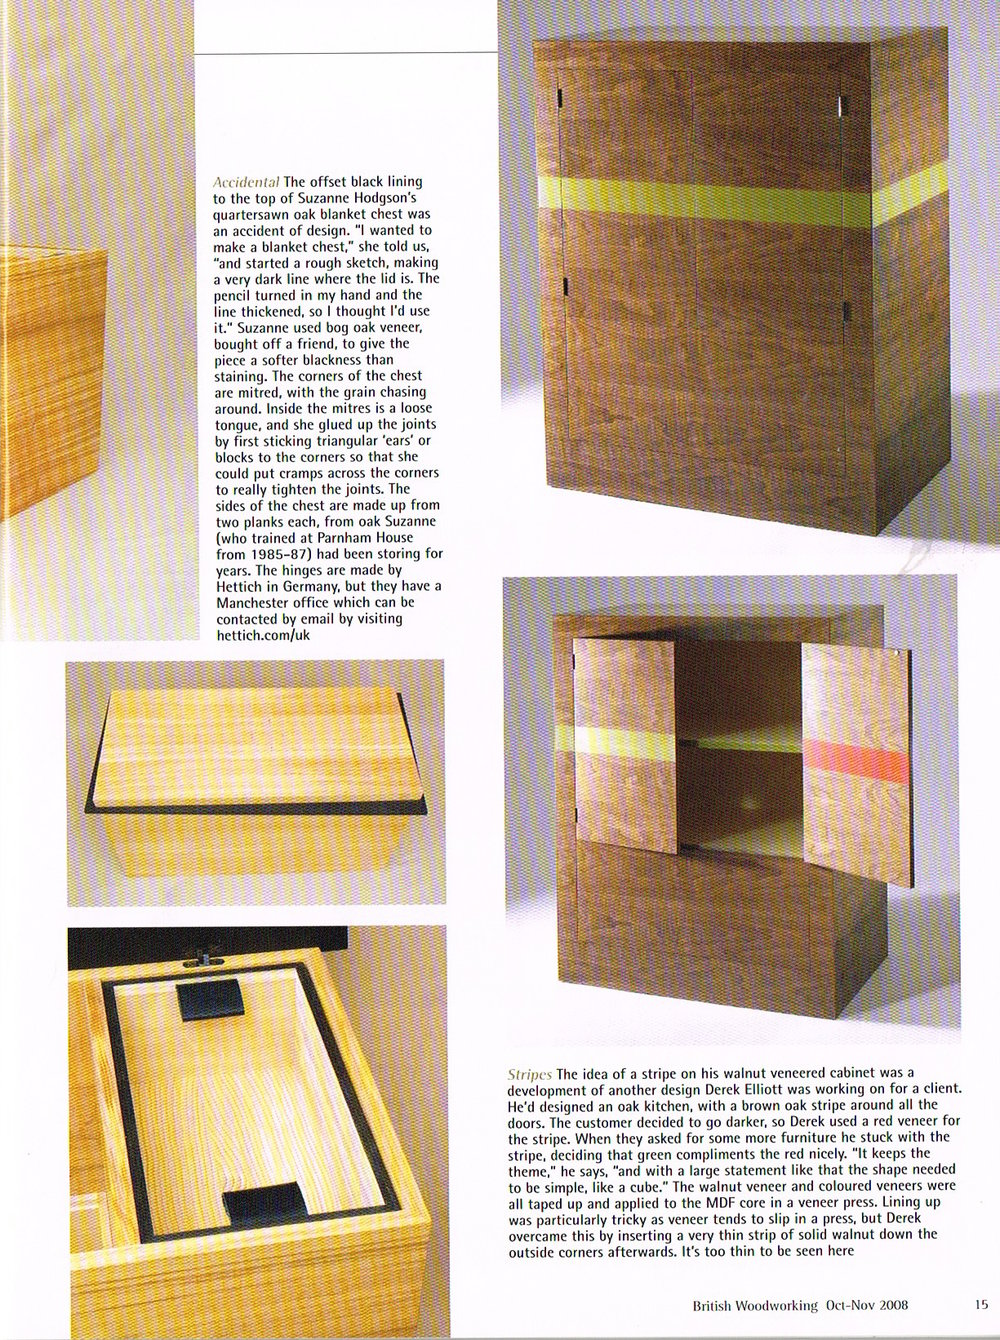 British Woodworking. Oct 2008